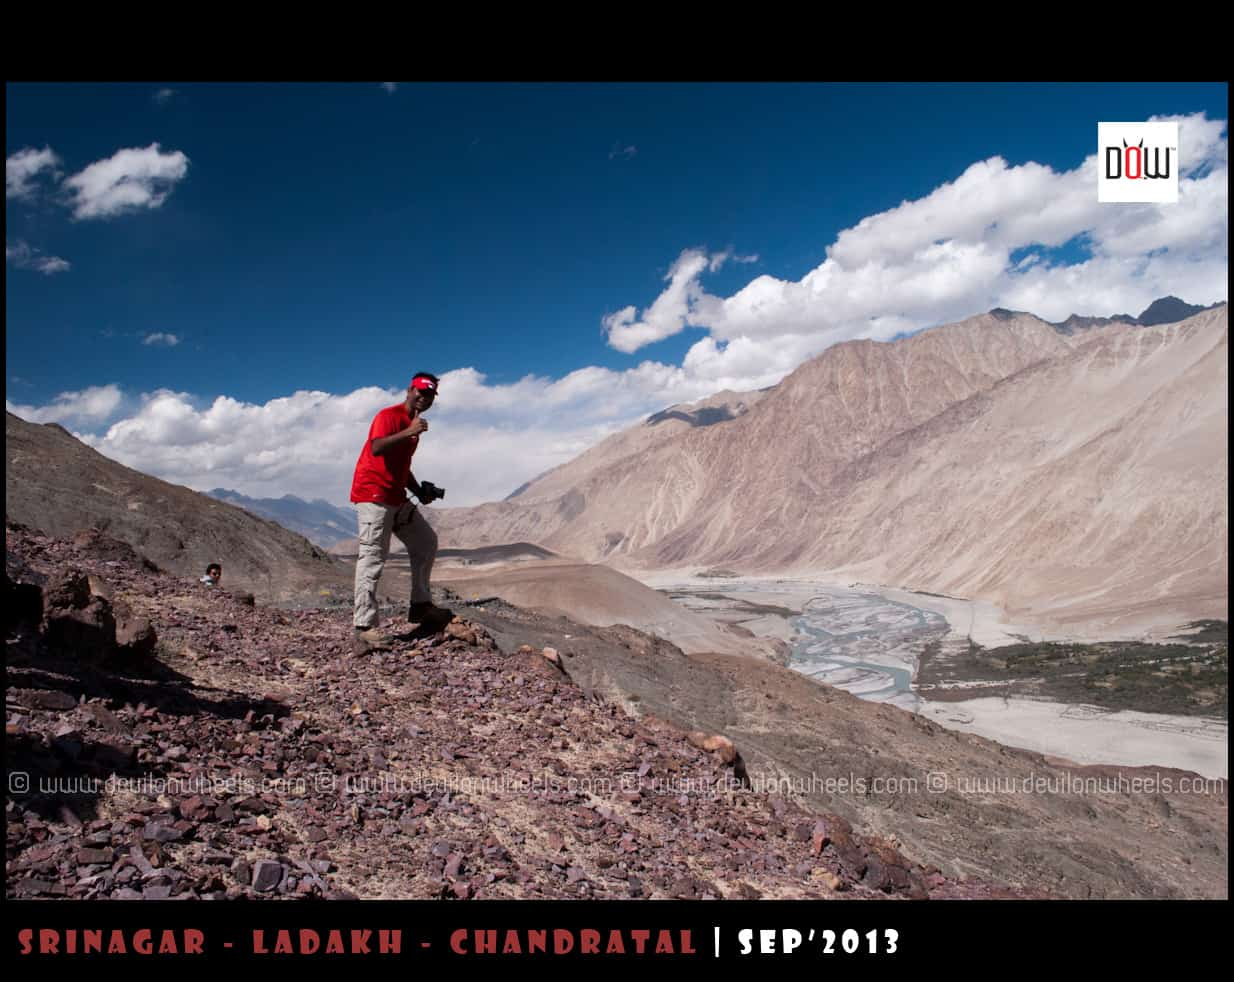 Shekhar, Thumb's Up for the magical views and this epic adventure